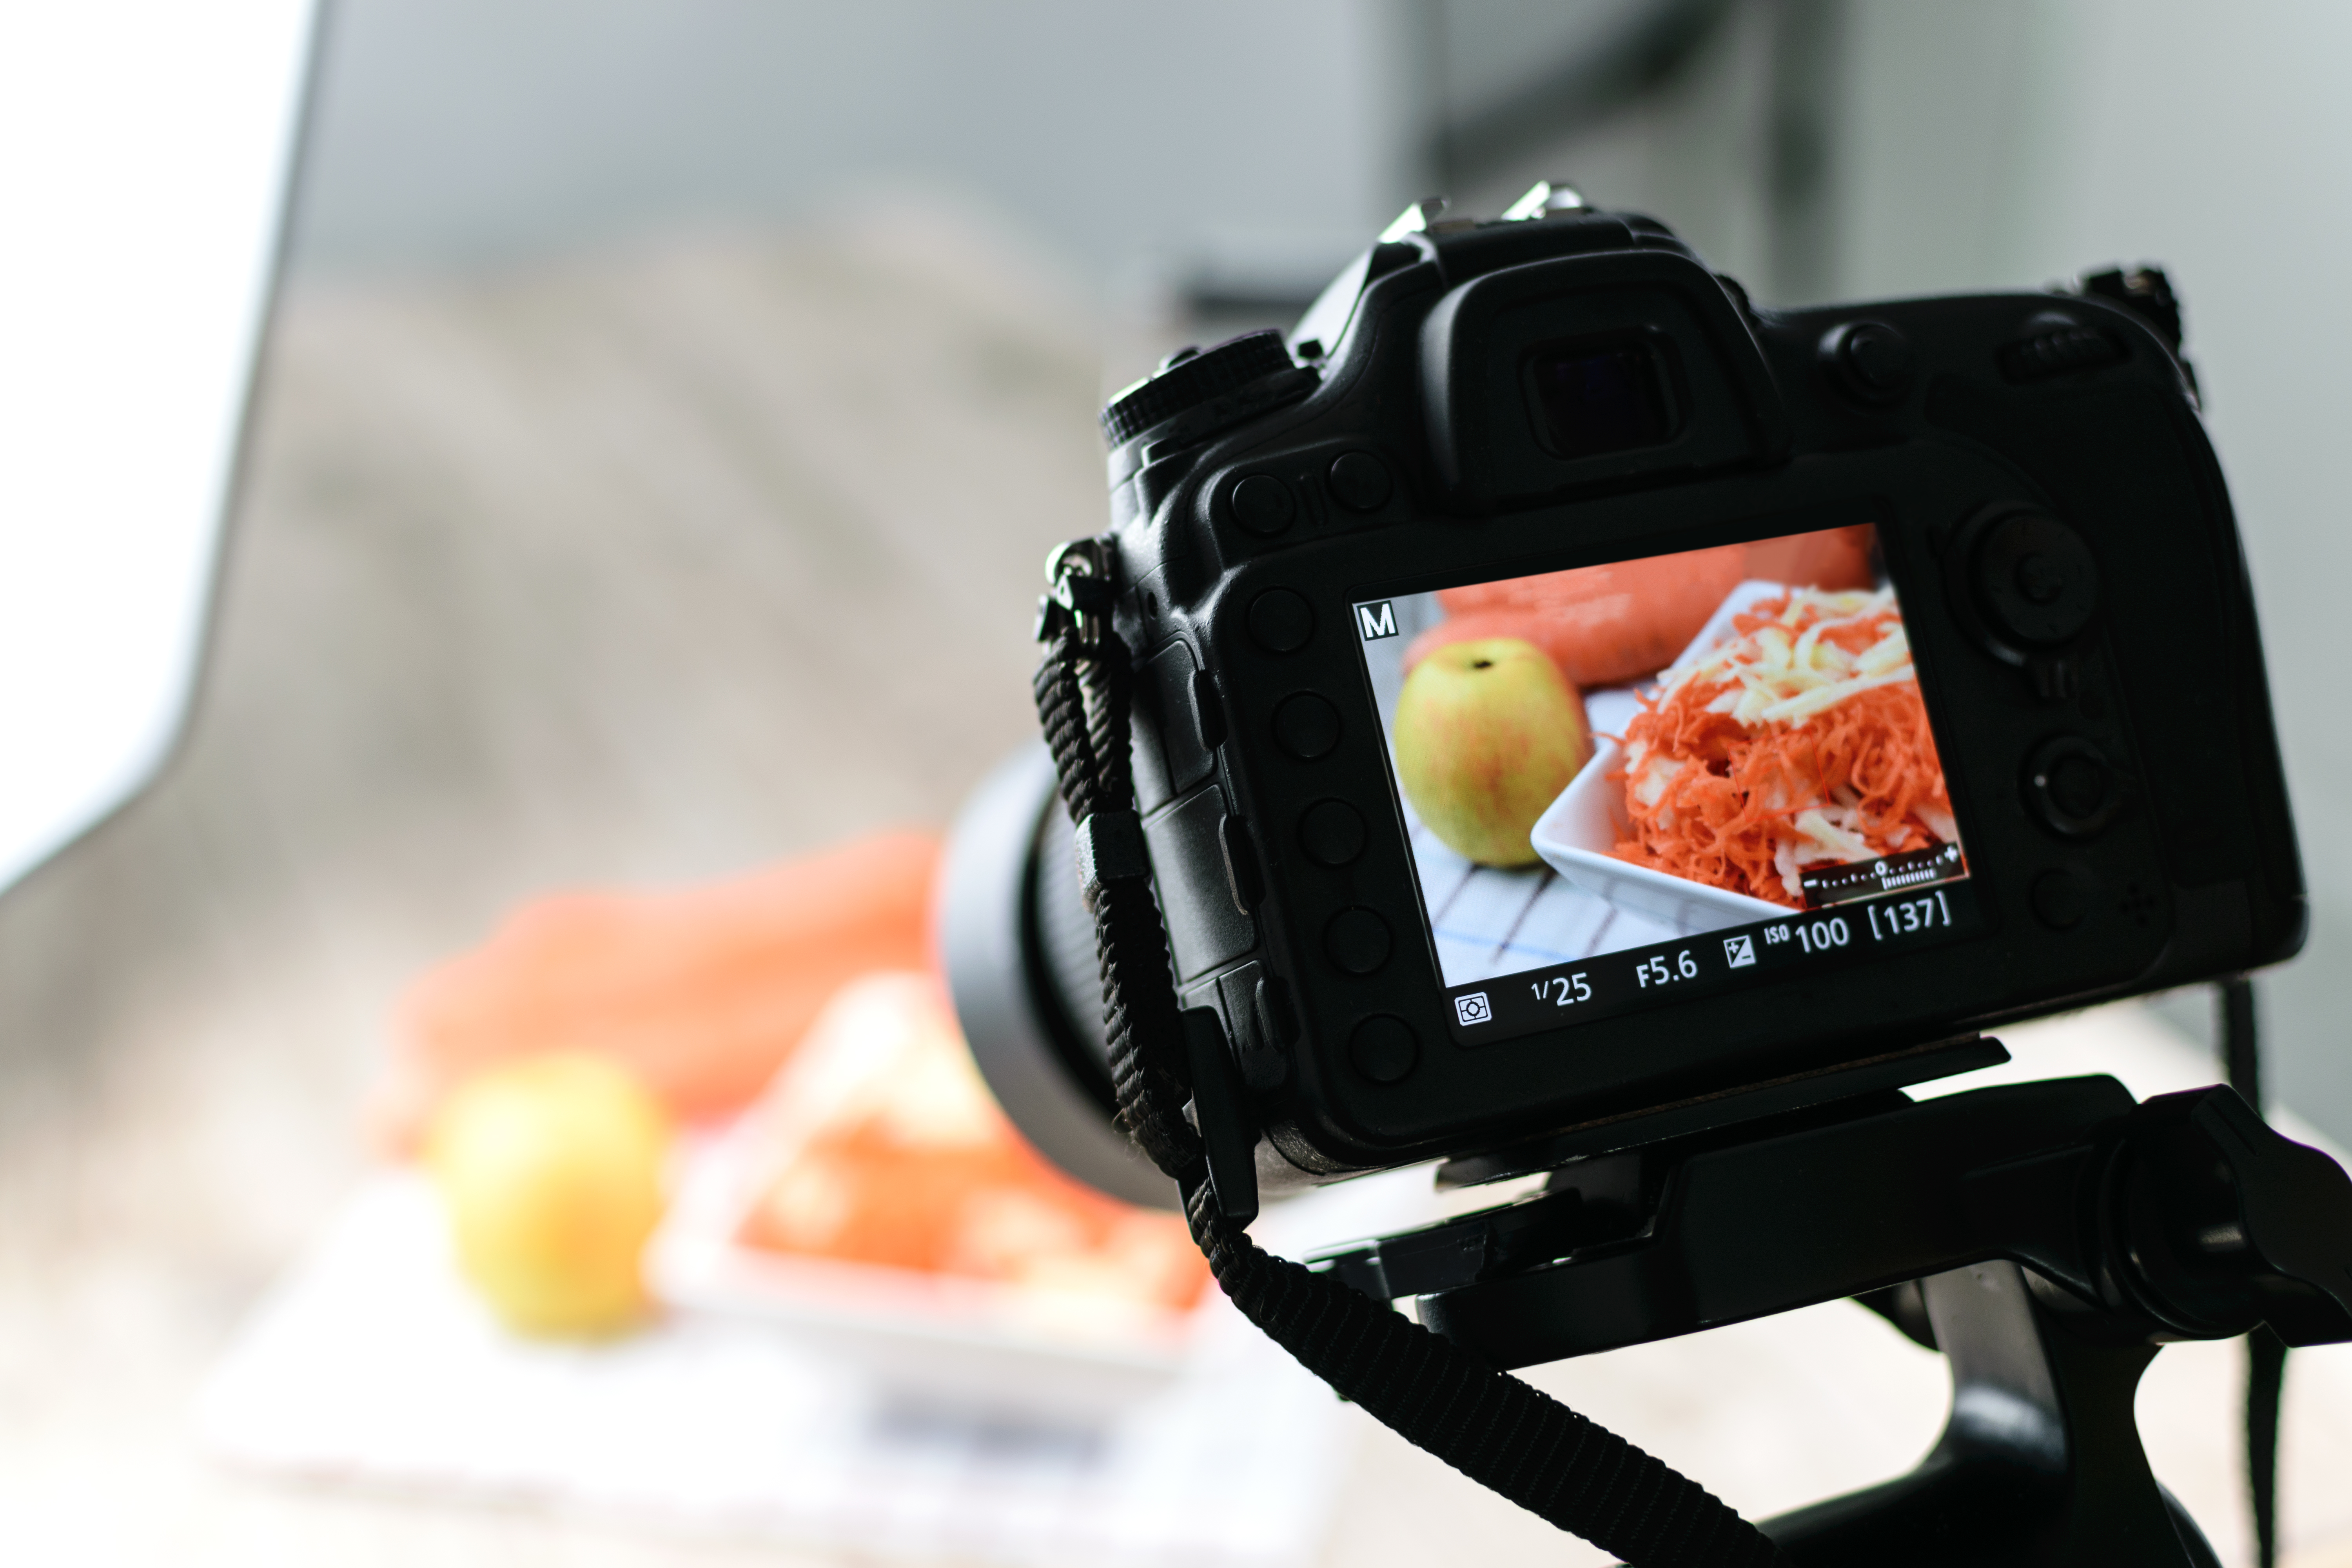 camera set up to take food photos, with image of food in the camera display